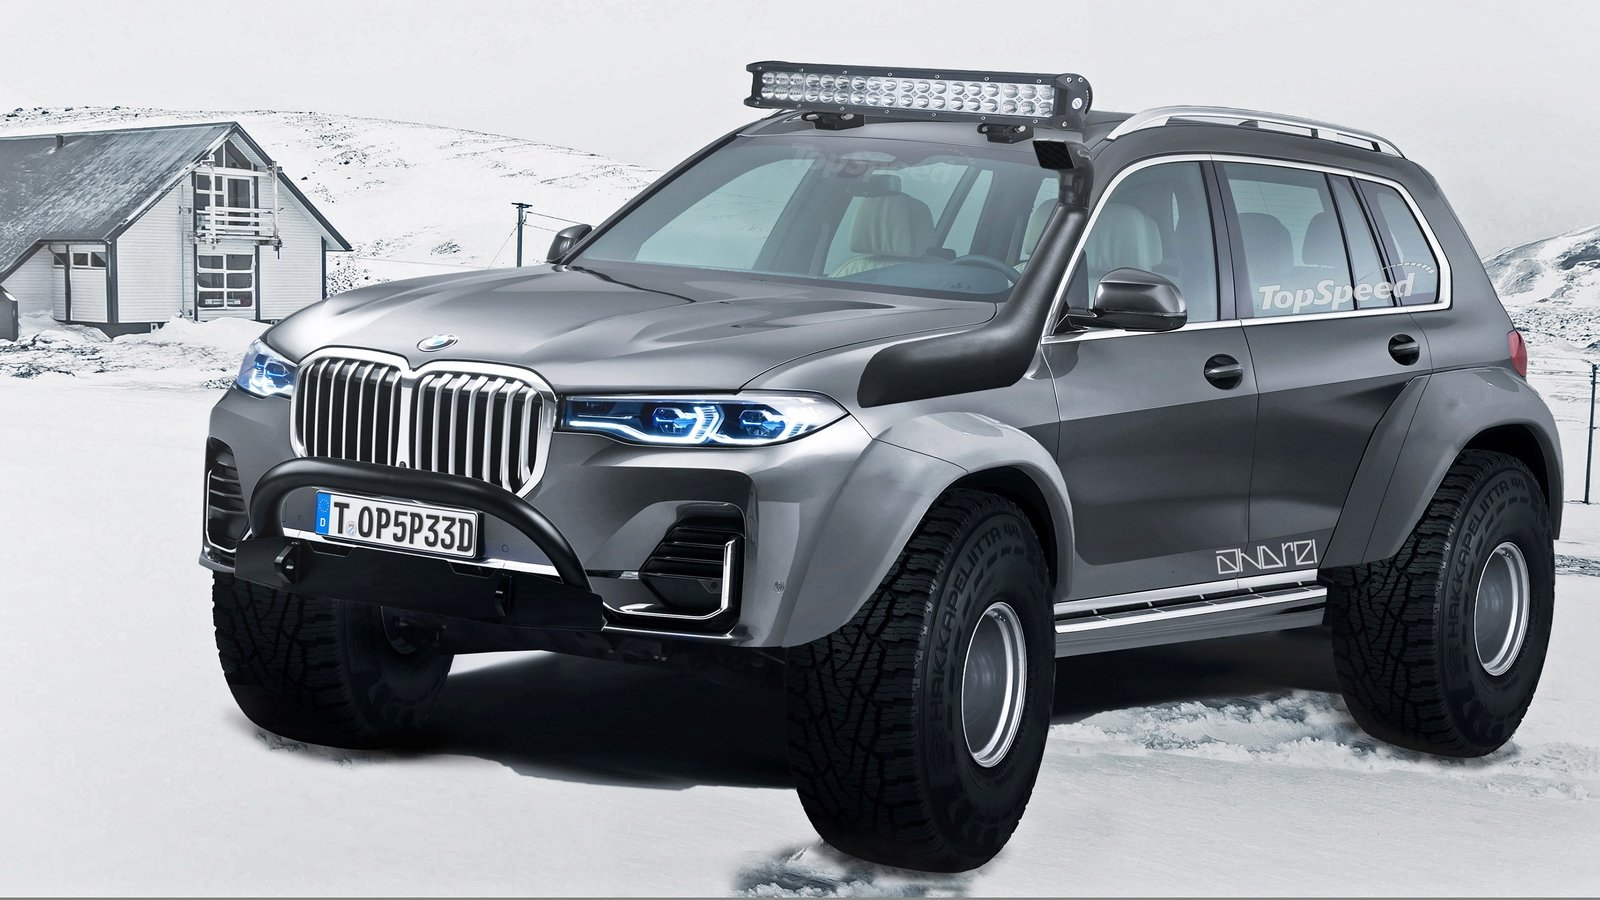 The Arctic Trucks Bmw X7 Isn T Real But We Want One Top